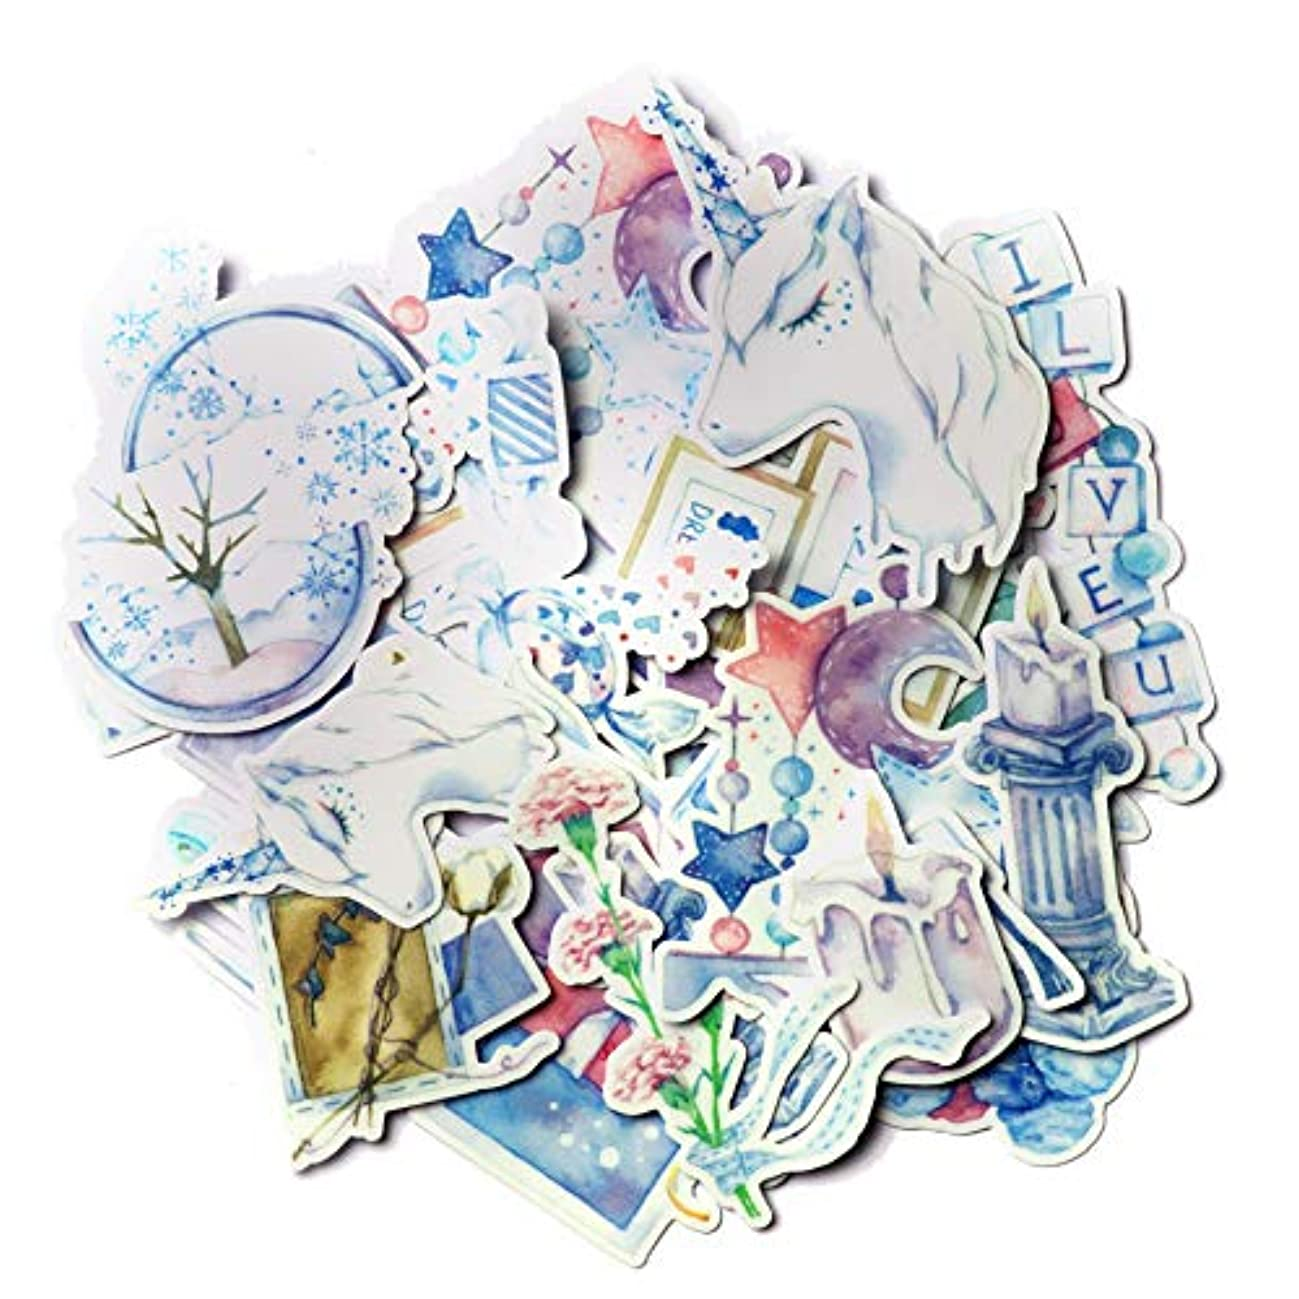 Navy Peony Blue Unicorn Stickers and Dreamy Decals (23 Pieces) | Aesthetic Stickers for Party Favors and Scrapbooking | Cute Stickers for Girls | Waterproof Stickers for Water Bottles and Laptops